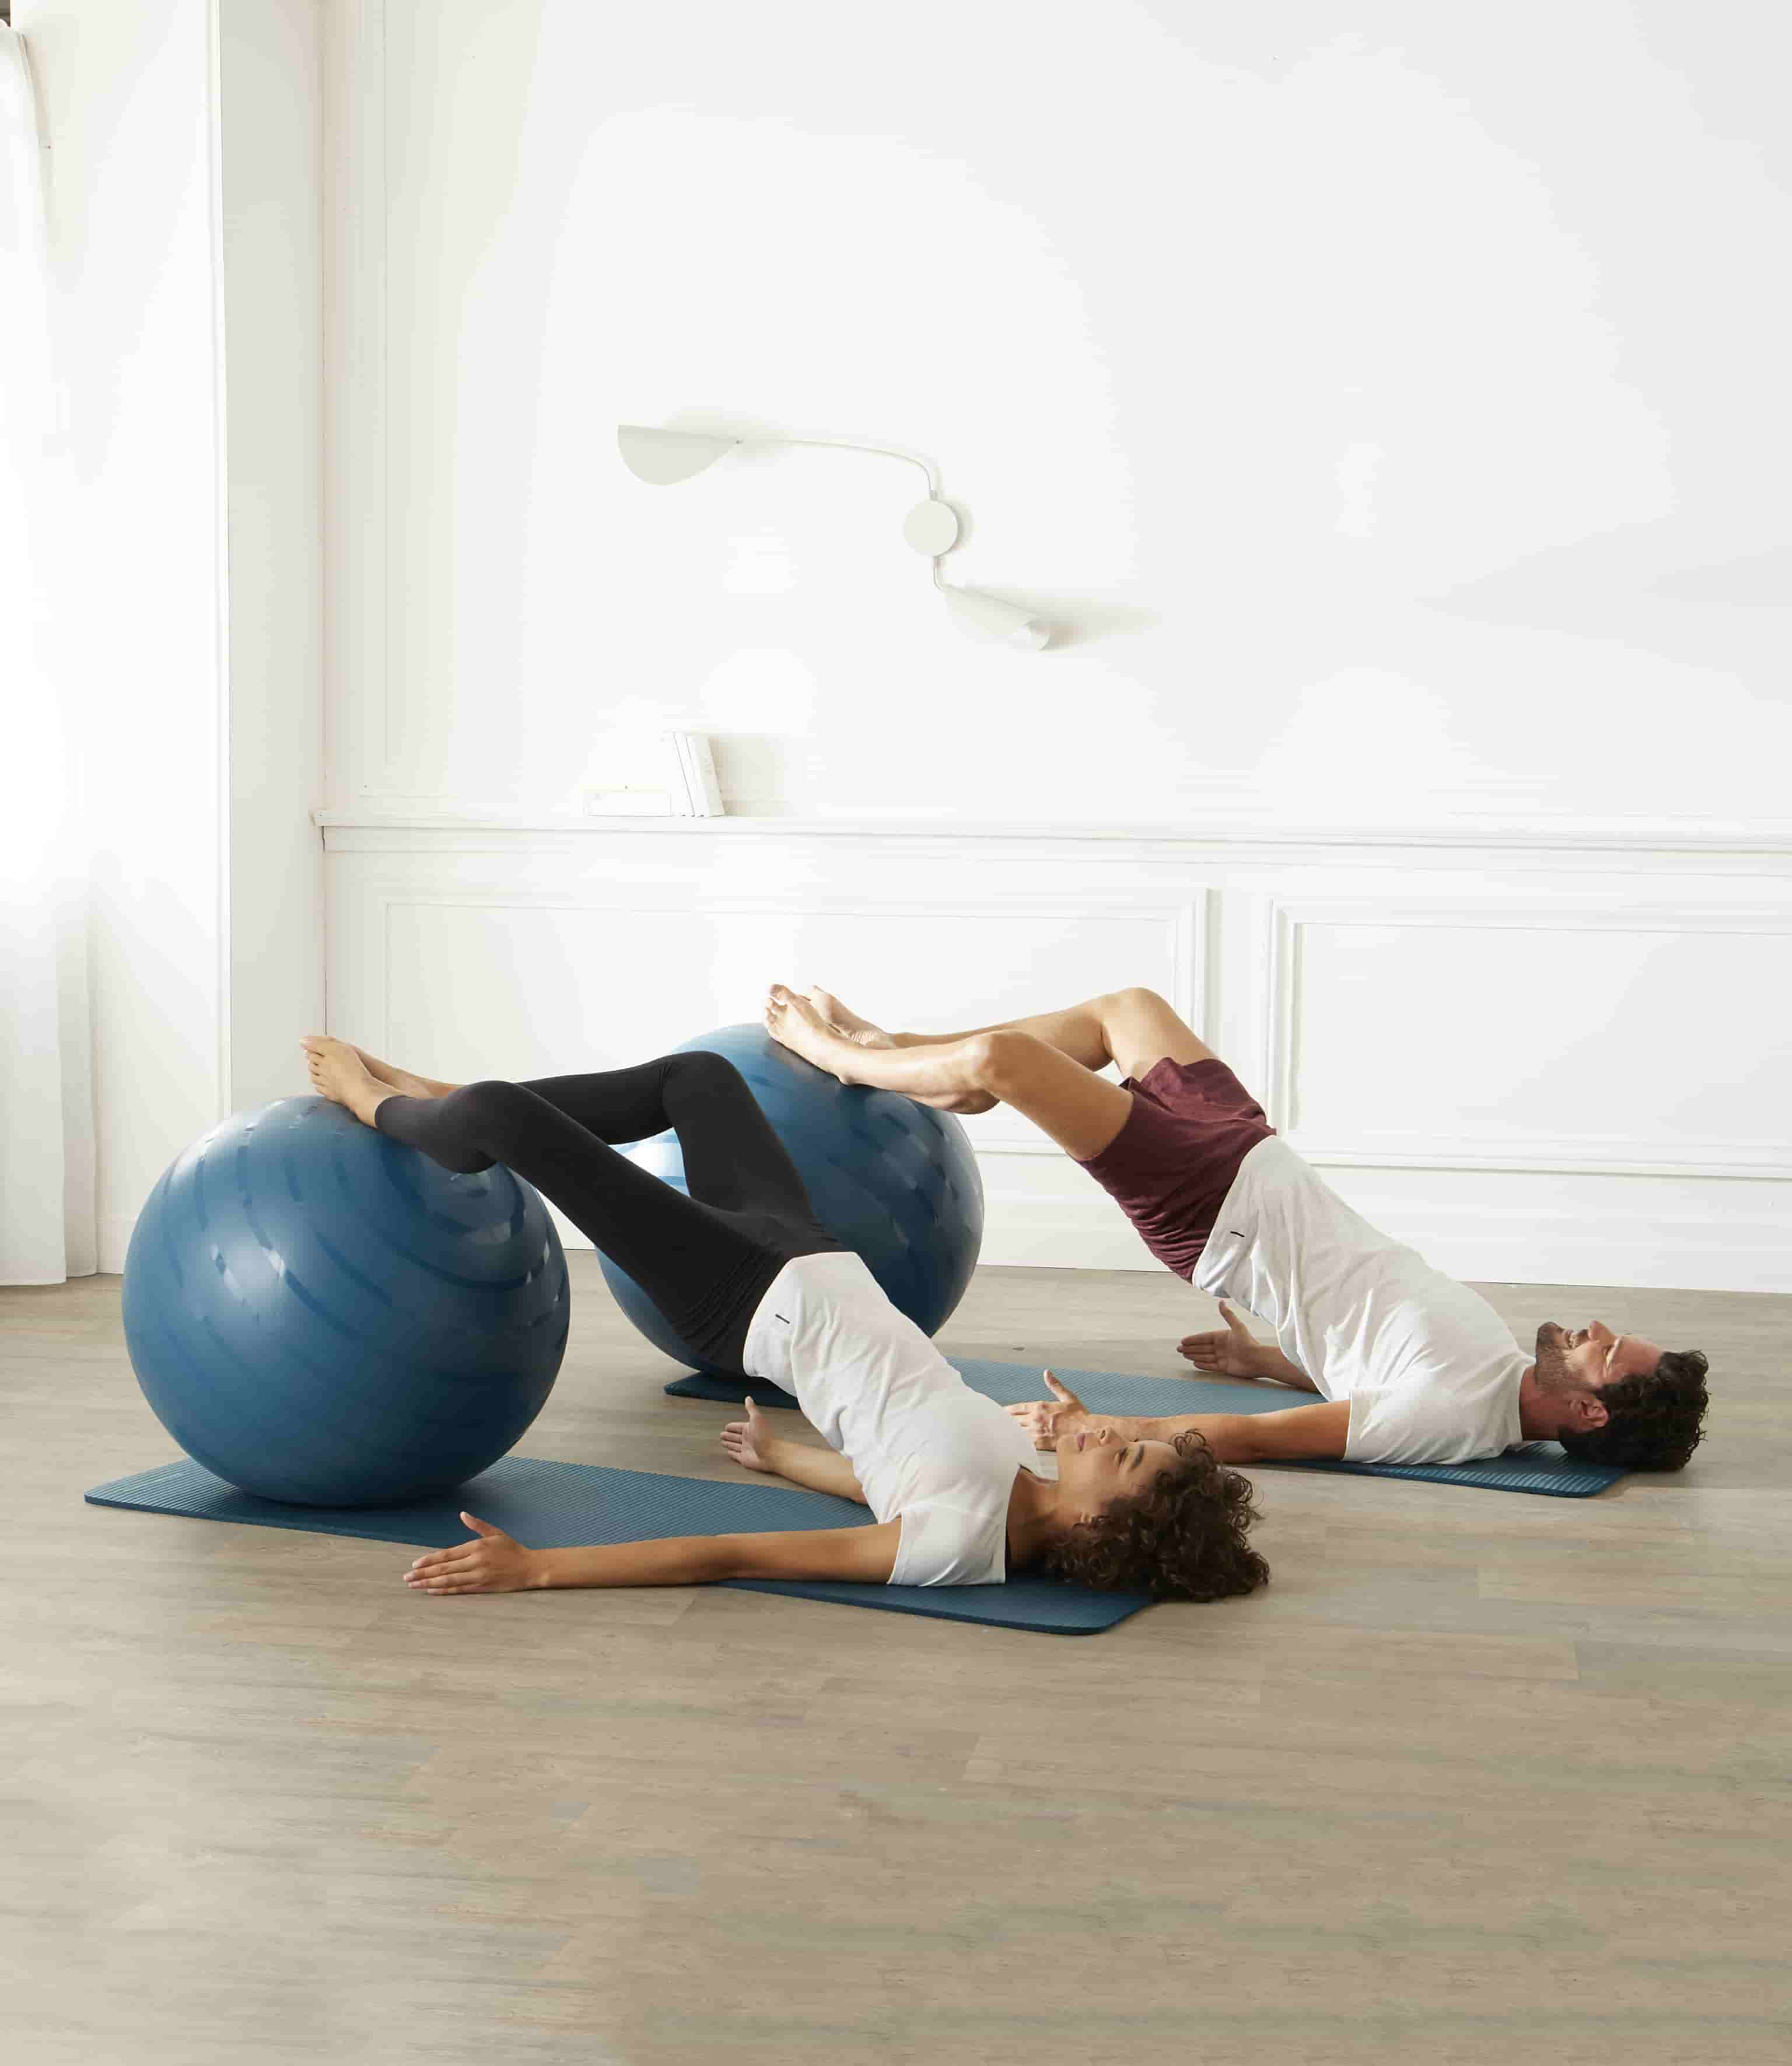 Using Cardio Equipment like Exercise Ball in Your Workout Routine